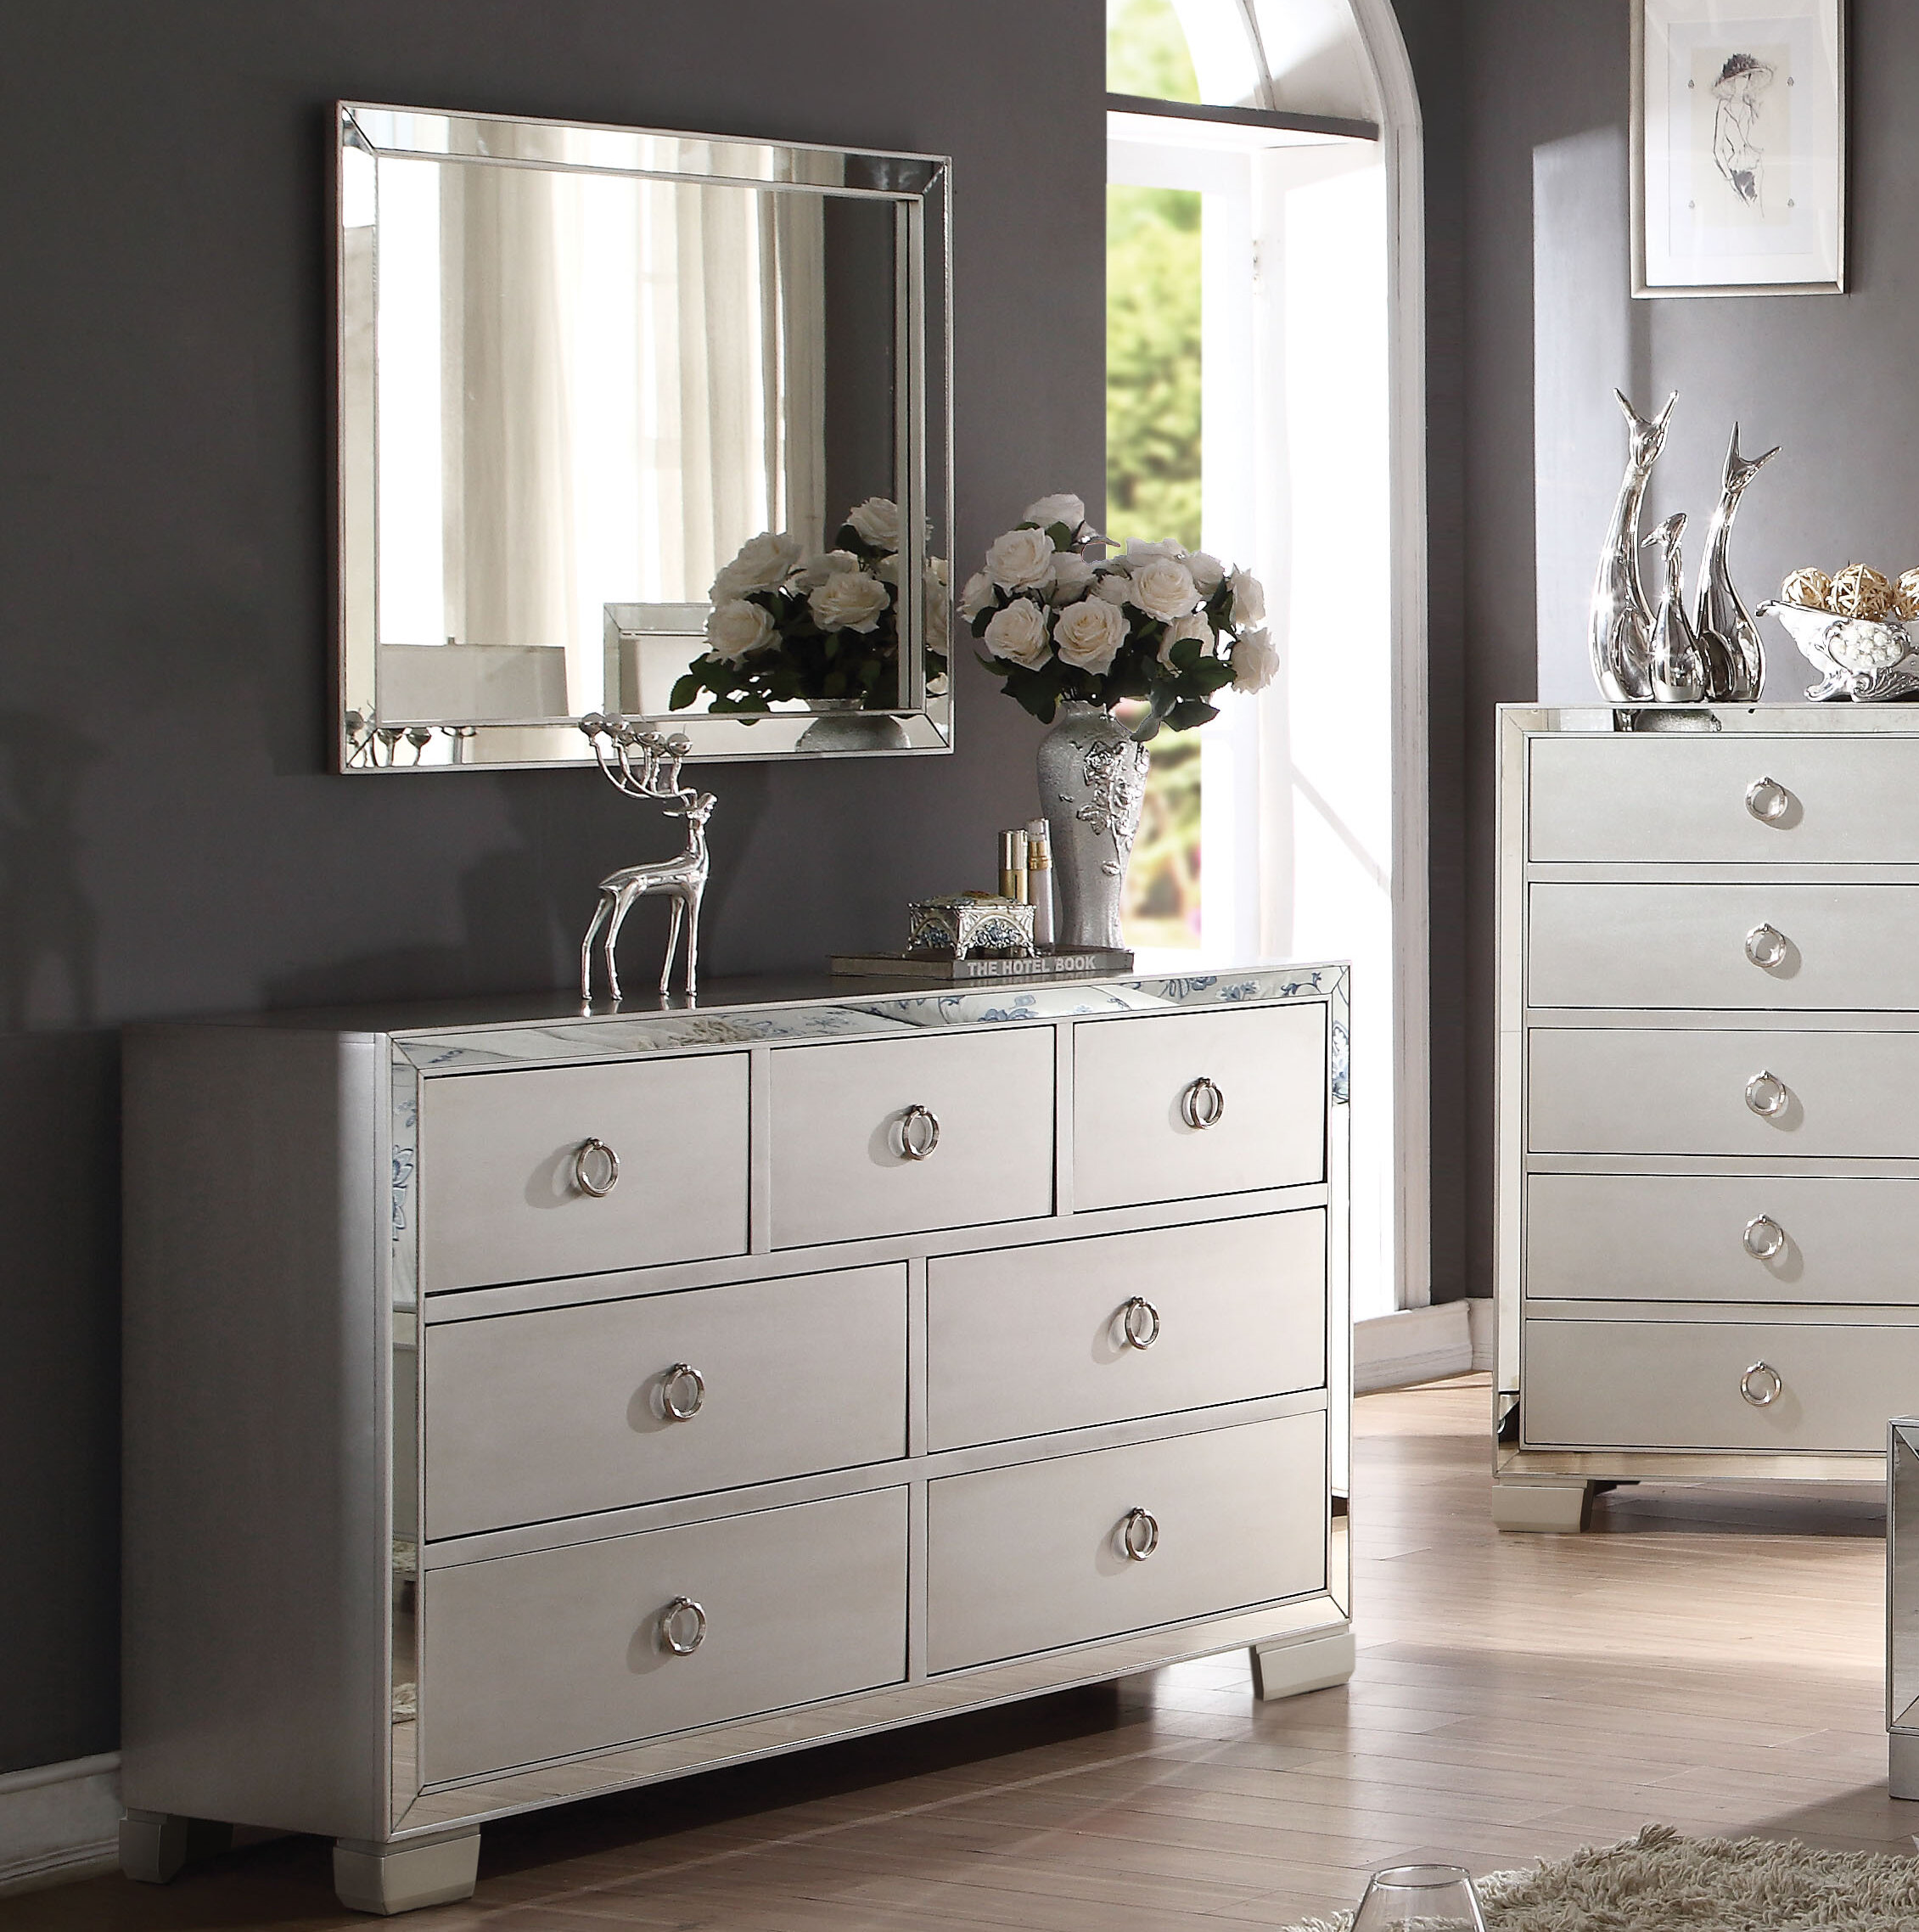 Mirrored Dressers Up To 60 Off Through 02 16 Wayfair